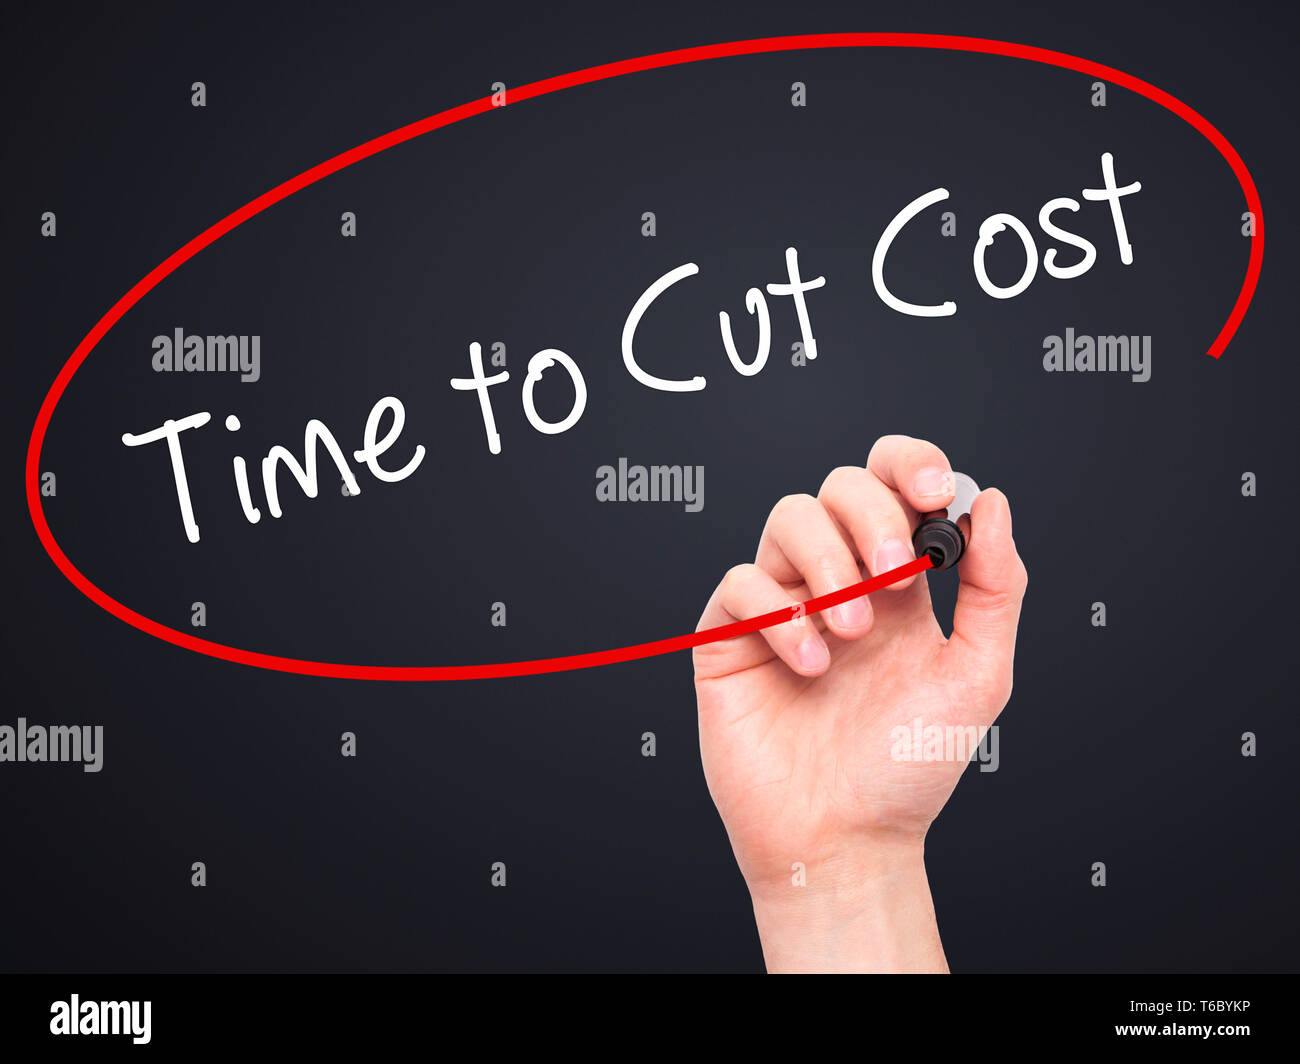 Man Hand writing Time to Cut Cost with black marker on visual screen - Stock Image